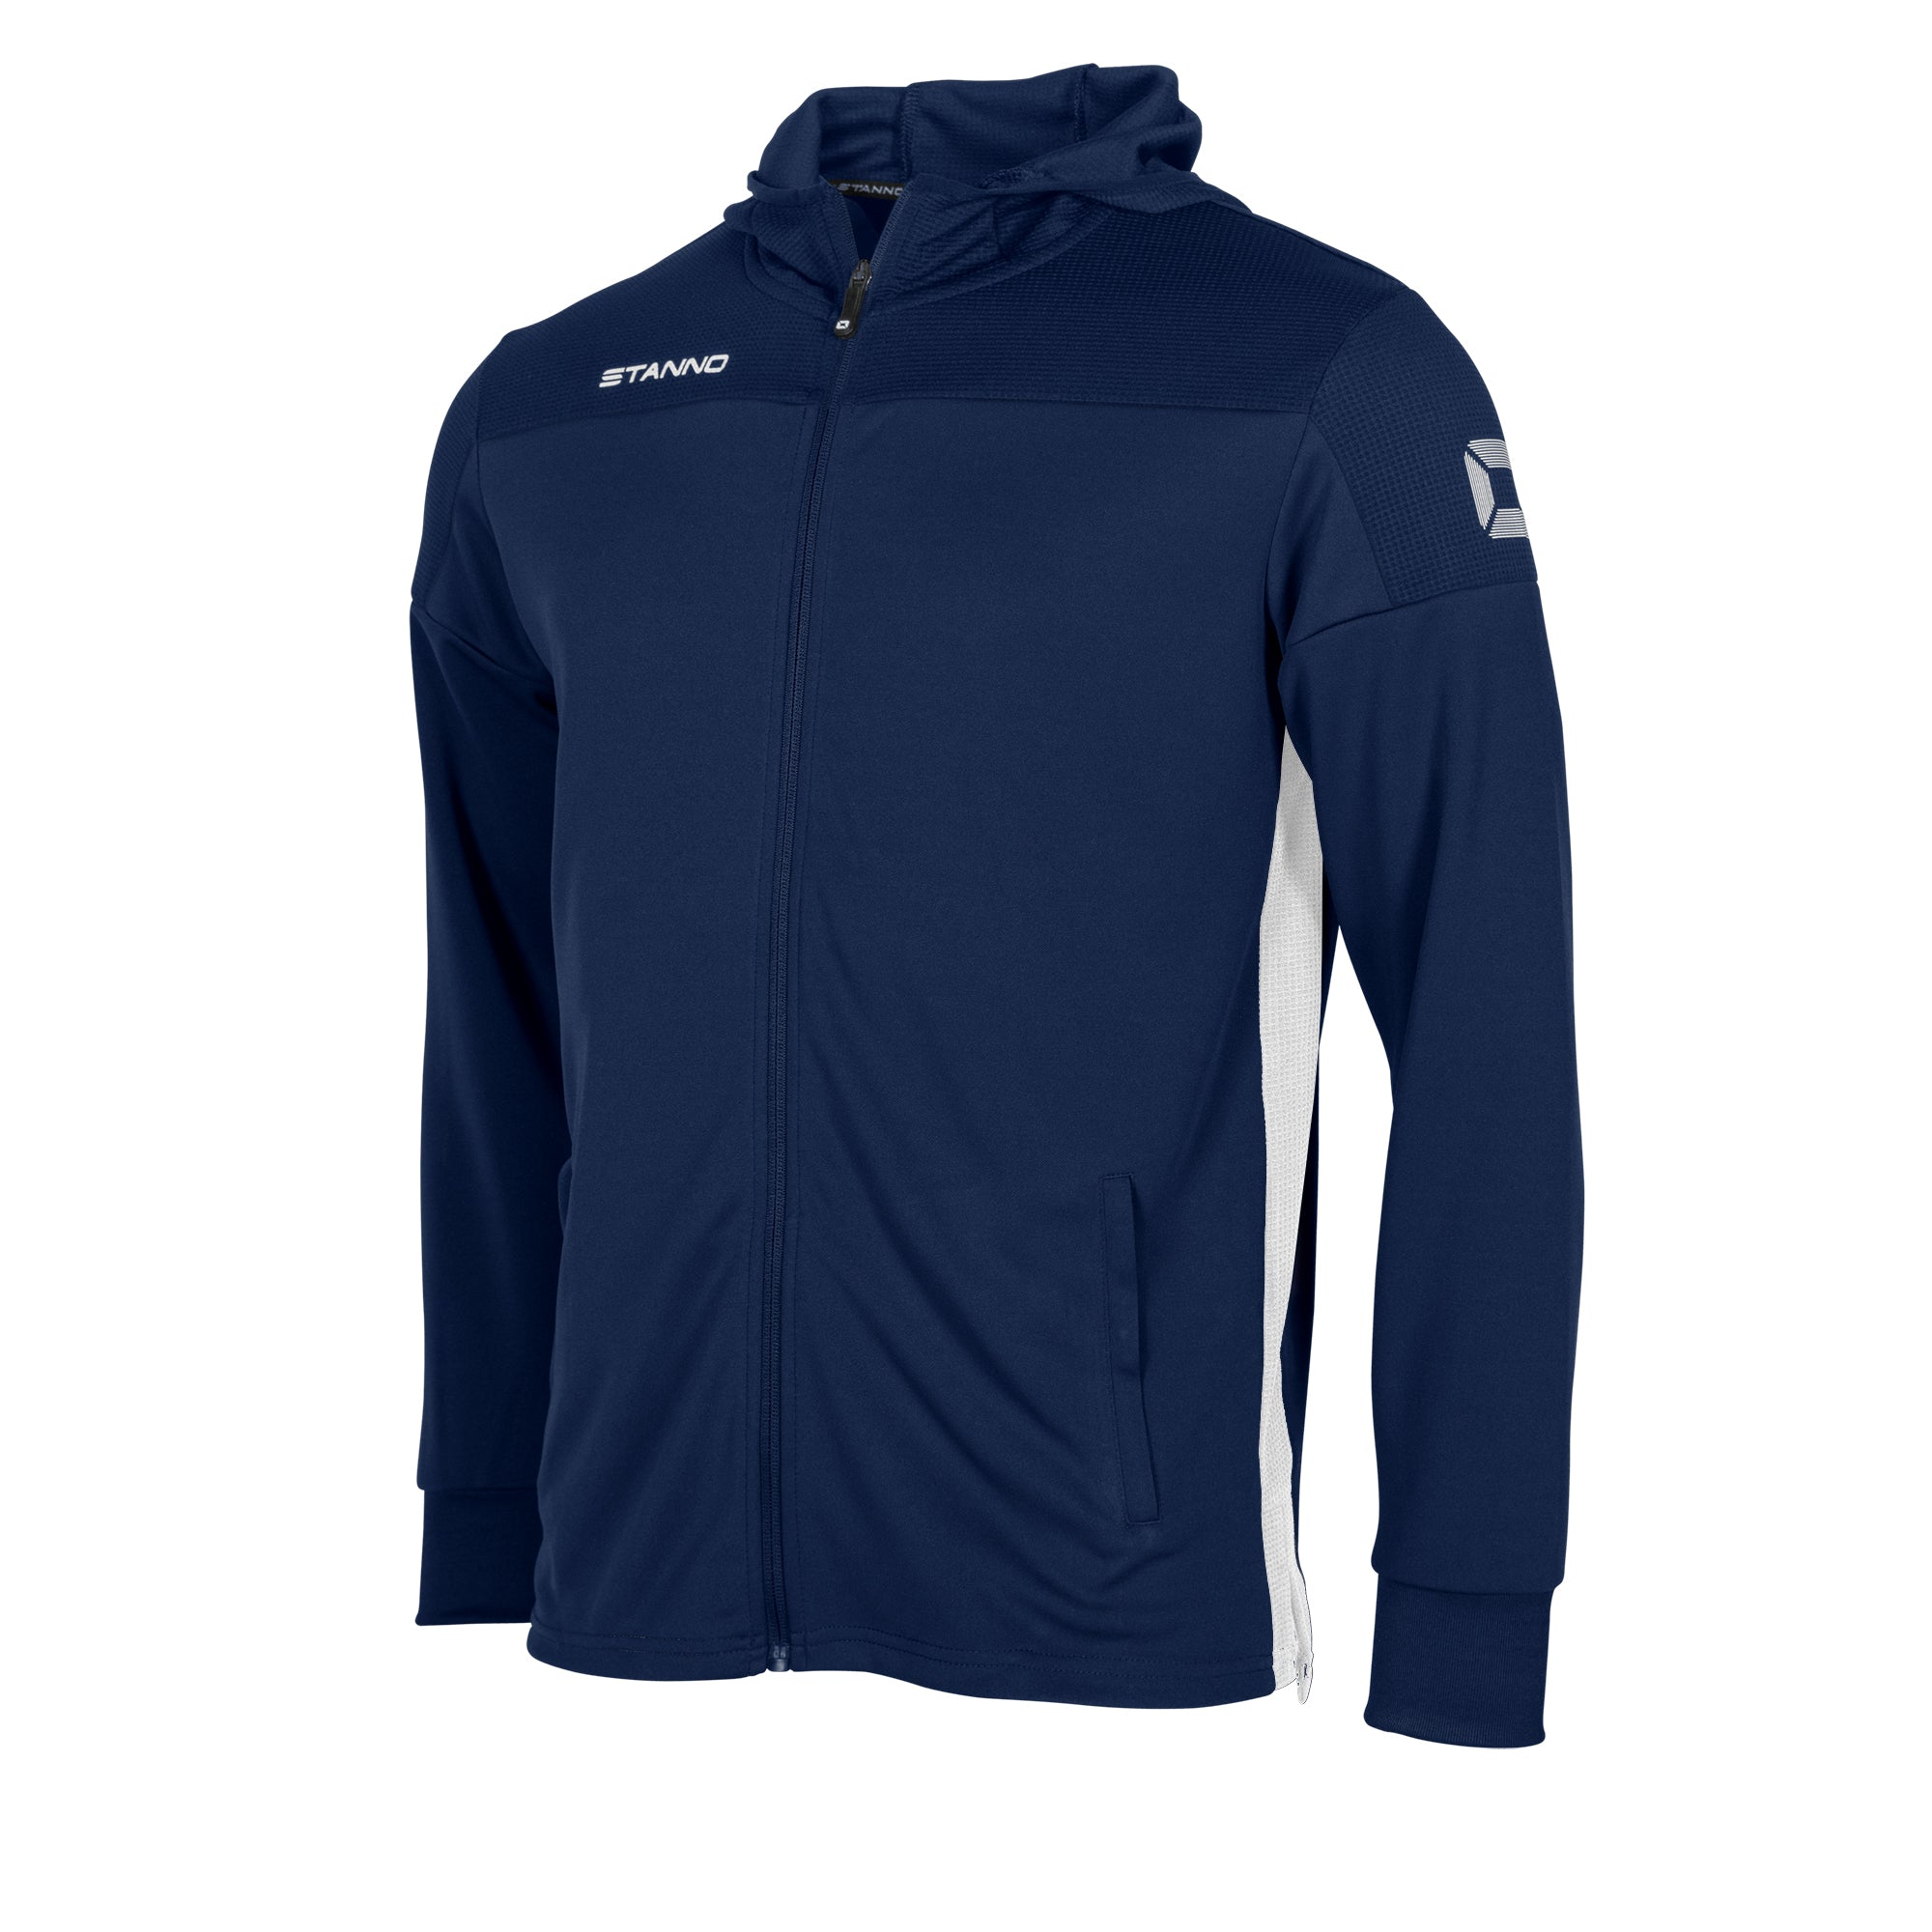 Stanno Pride Hooded Sweat full zip Jacket in navy with white contrast side panels